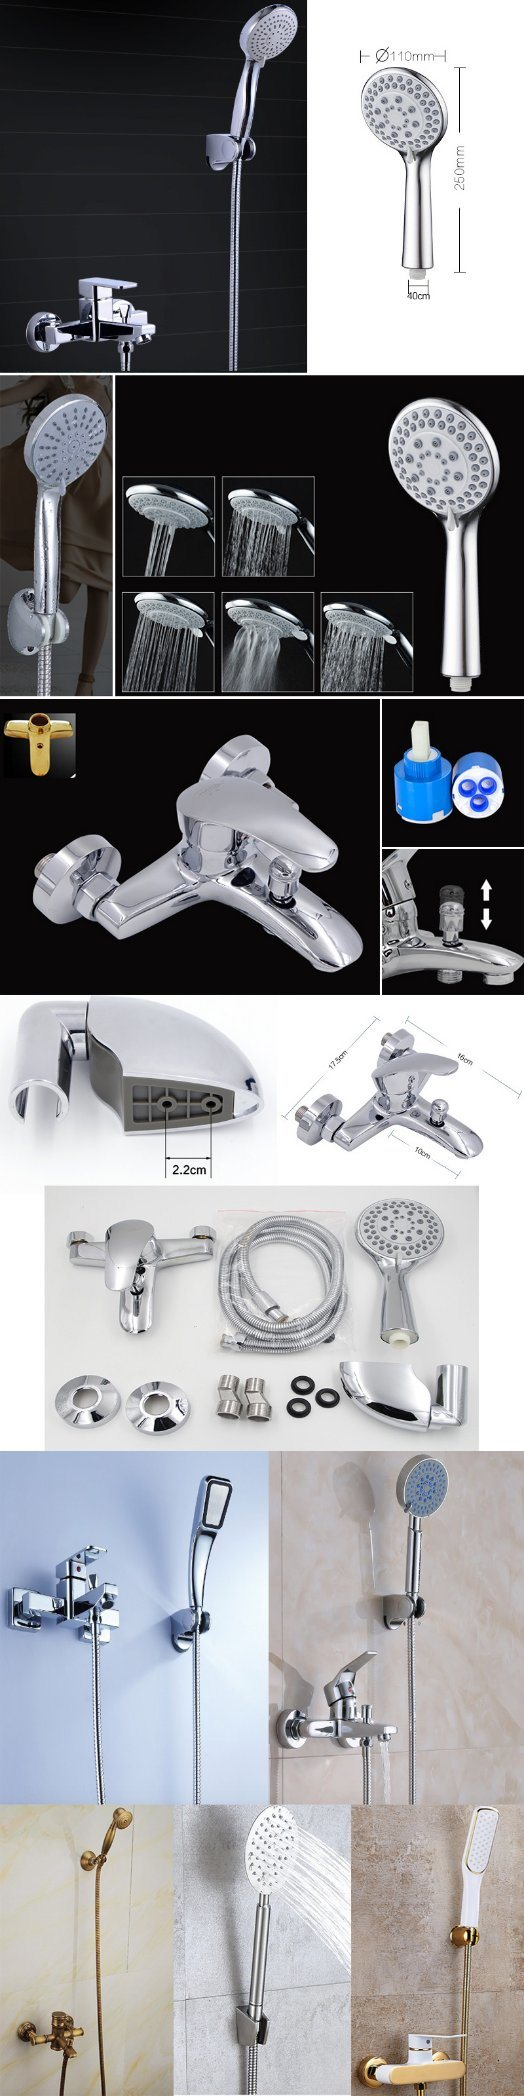 2018 Hotsale Shower Set with Negatve Ion Shower Head, Shower Faucet, SS304 Hose and Wall Mount Bracket